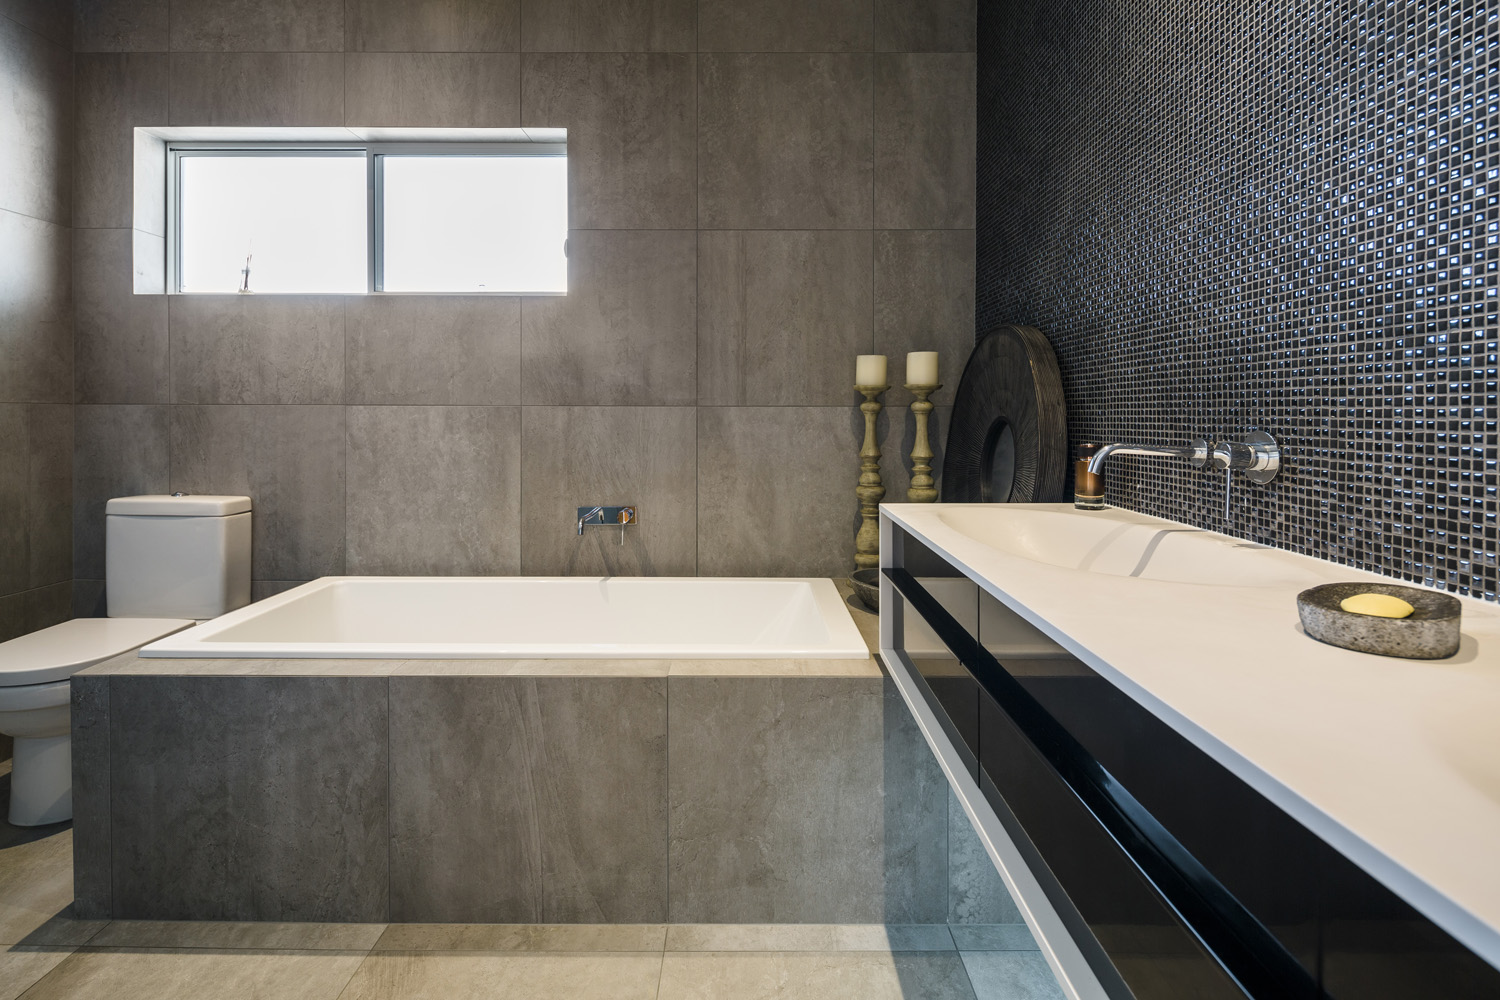 tiles Top things you should not skimp on - Bathroom Renovation Auckland - Kitchen Renovation, Bathroom Renovation - Auckland